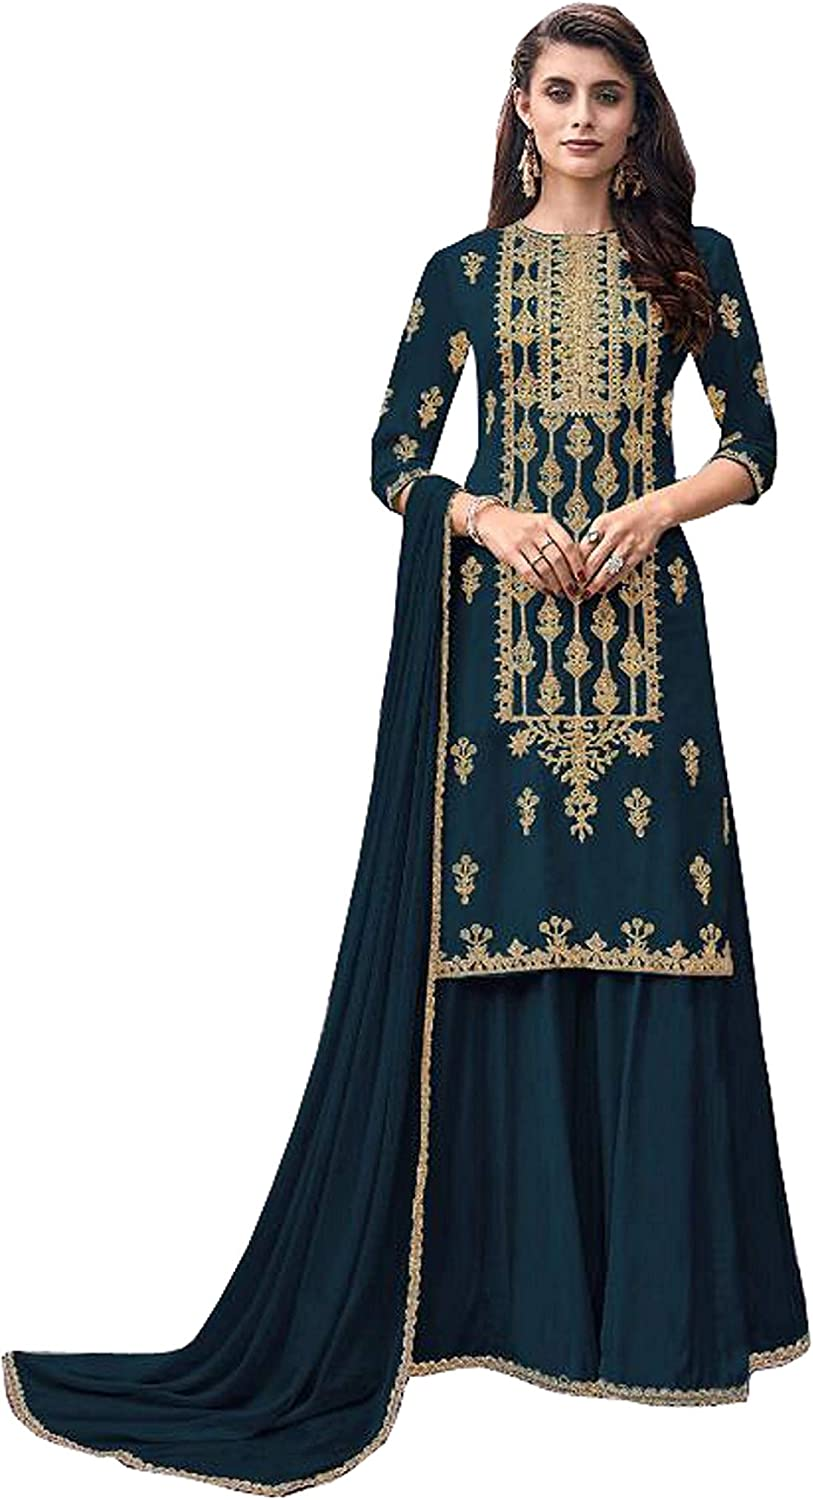 Indian Traditional Faux Limited time cheap sale Sales of SALE items from new works Georgette Salwar Embroidery Worked Kamee